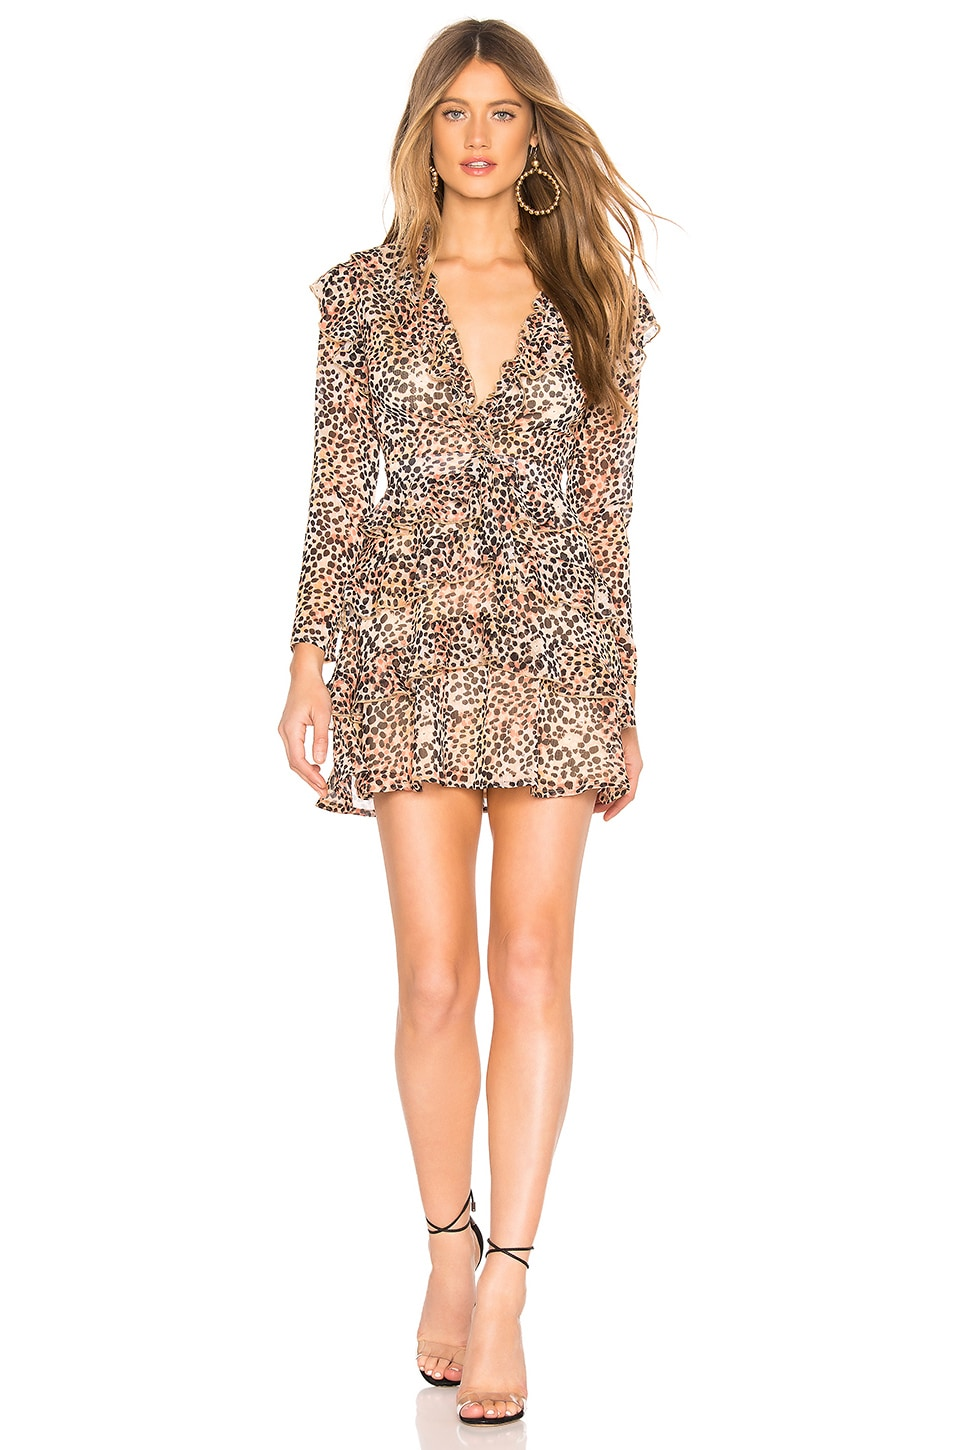 MAJORELLE Magdelina Mini Dress in Spotted Multi